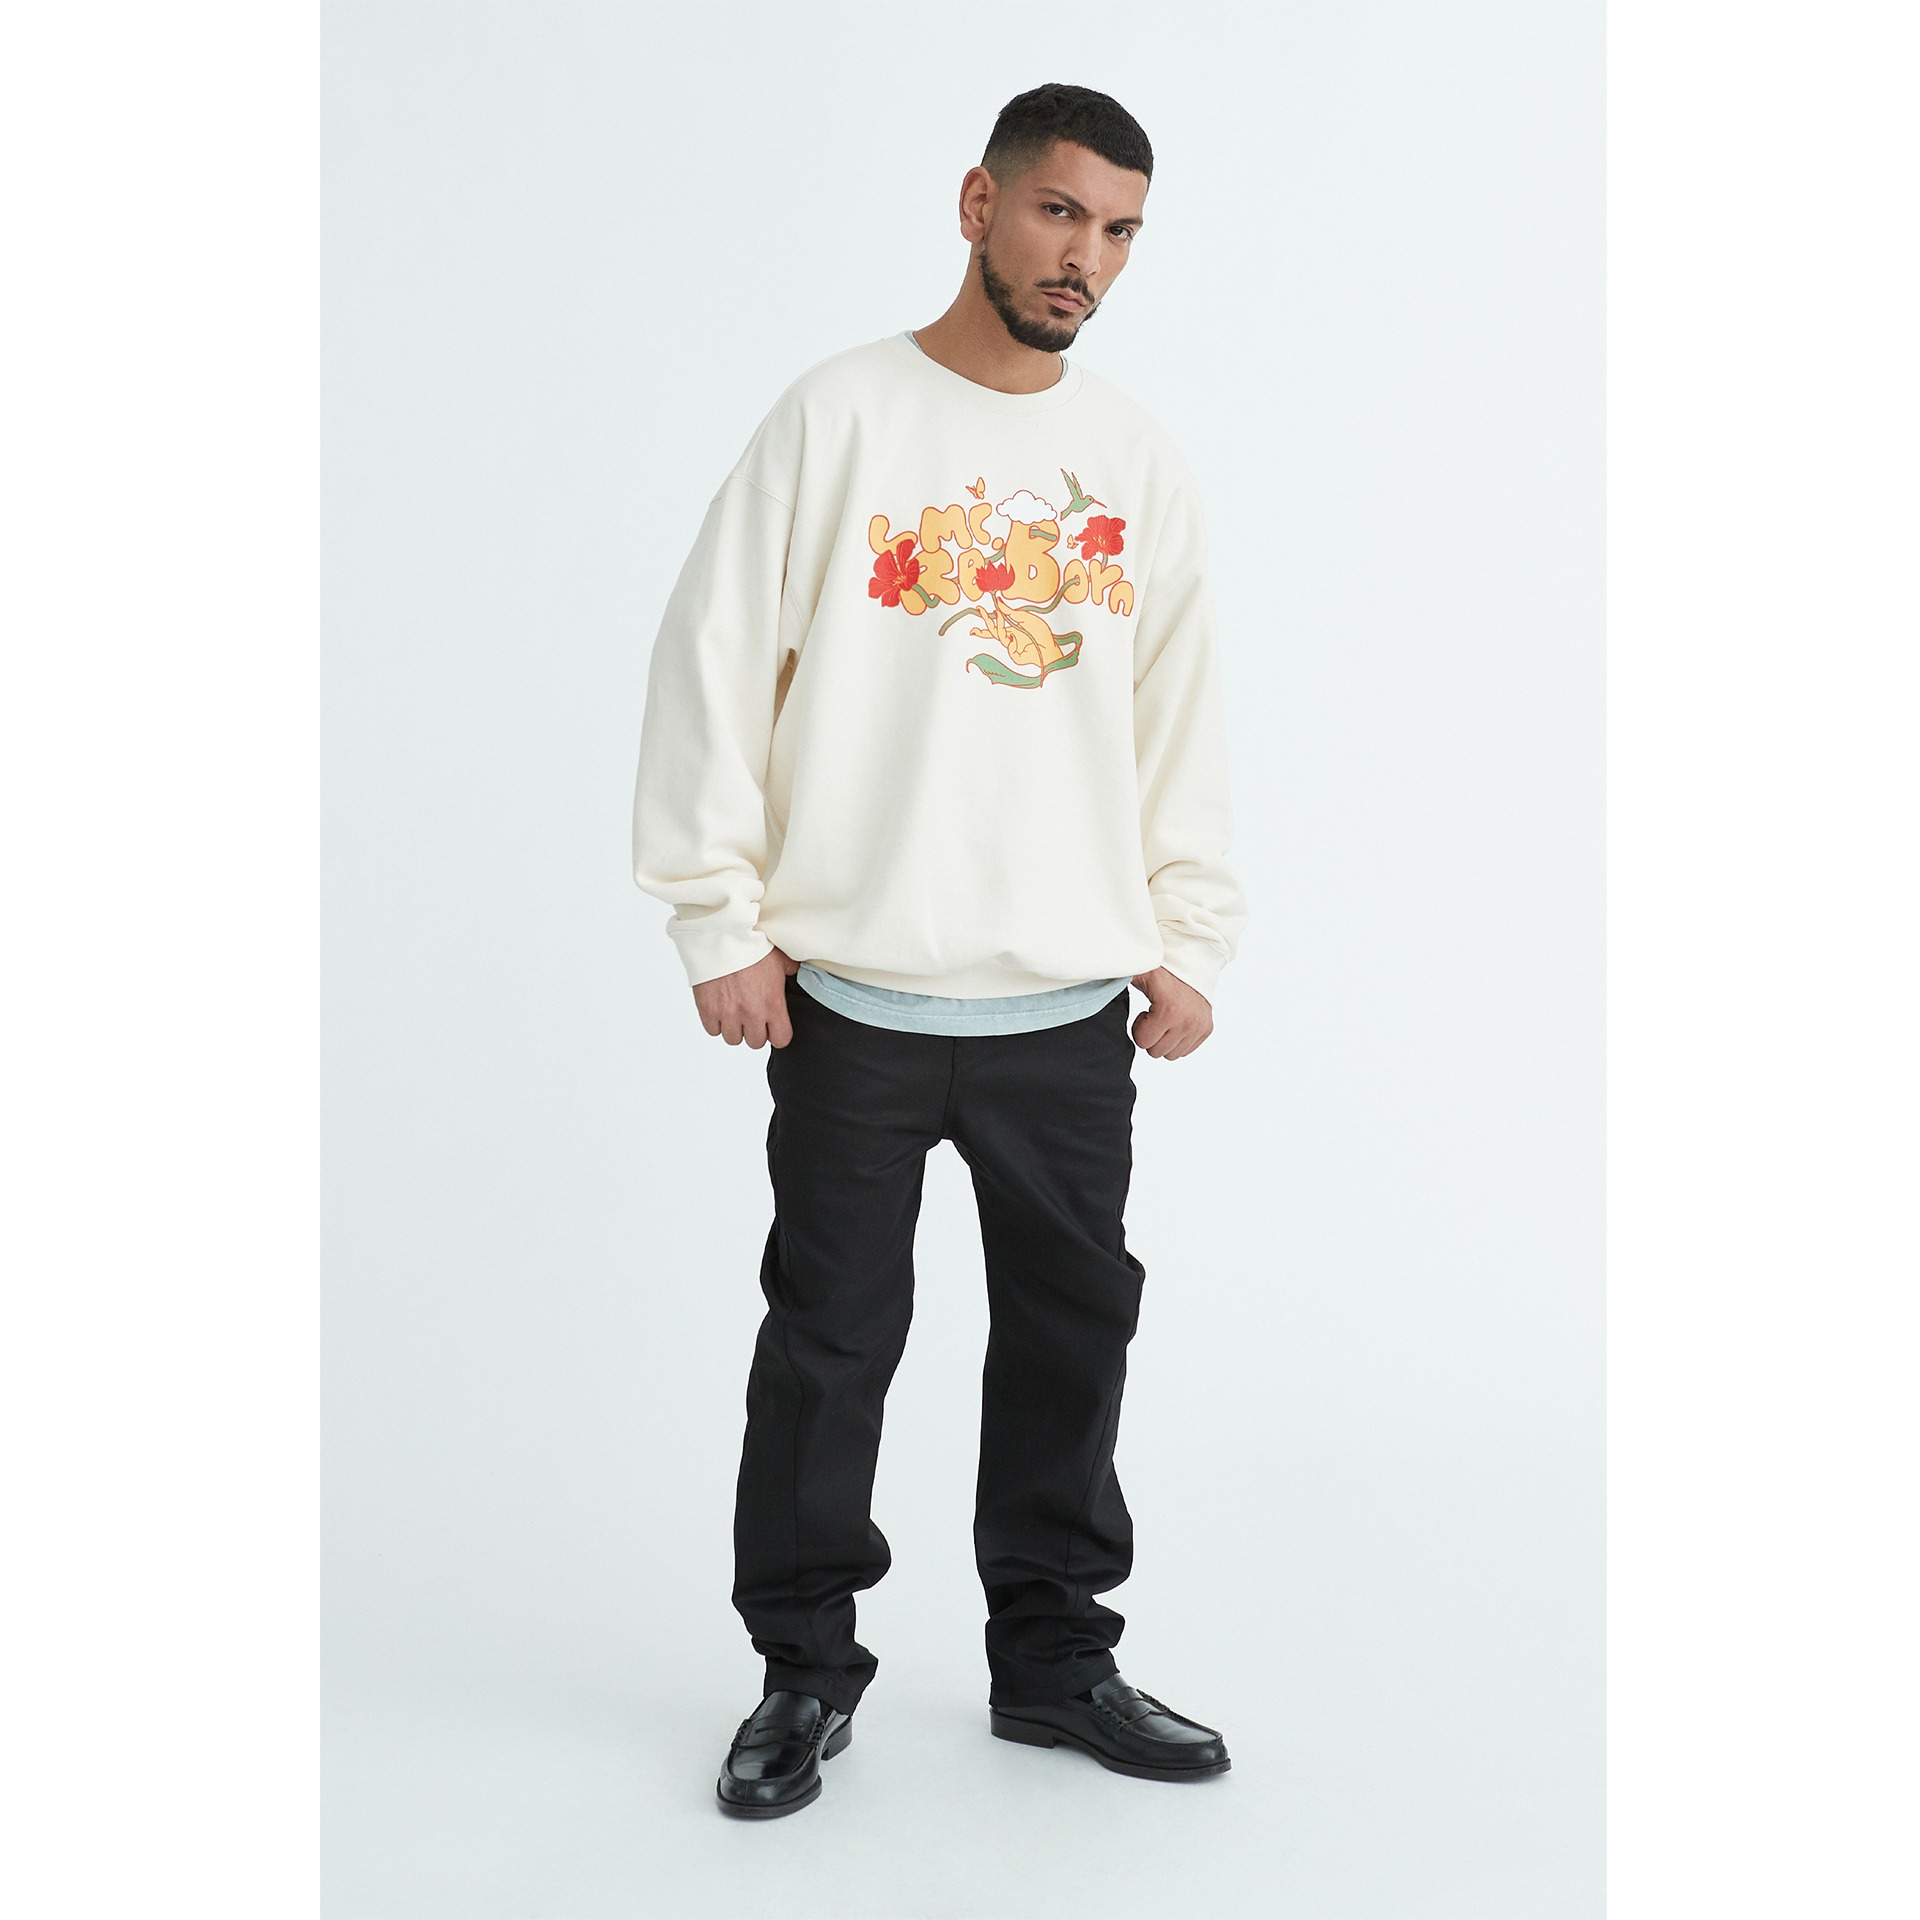 LMC REBORN OVERSIZED SWEATSHIRT cream